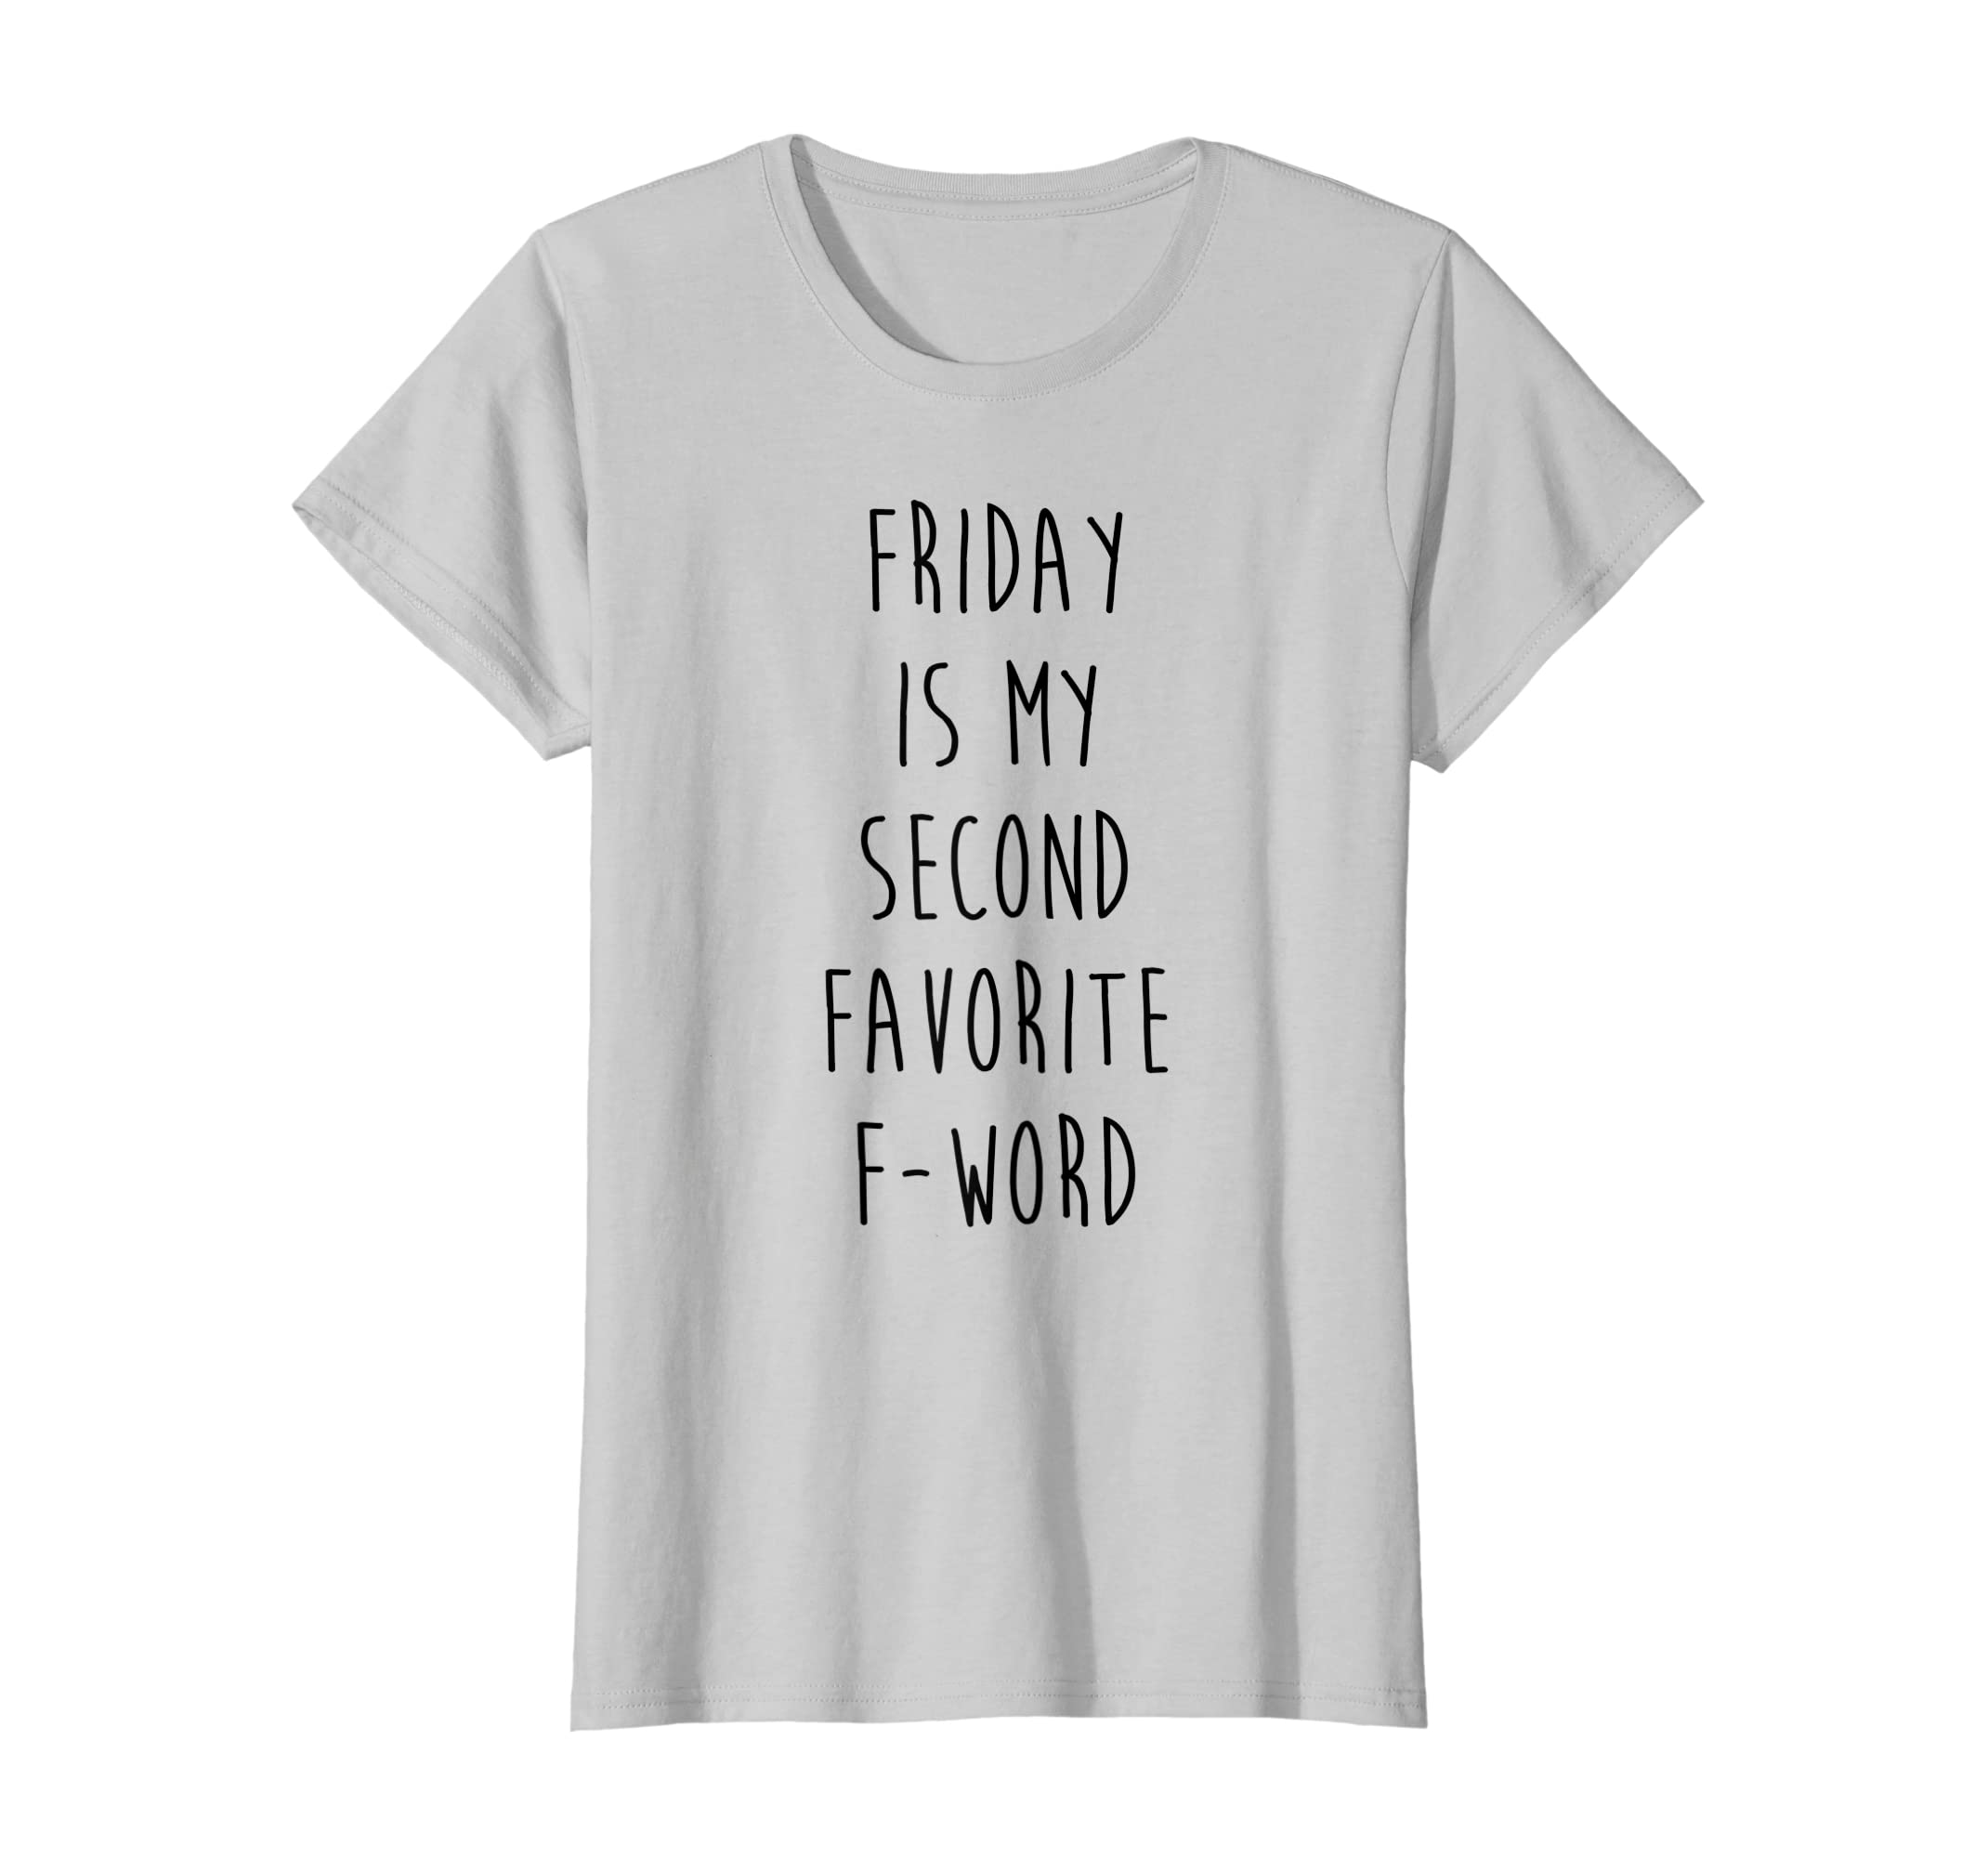 cab3961d8 Amazon.com: Friday Is My Second Favorite F Word T-shirt: Clothing